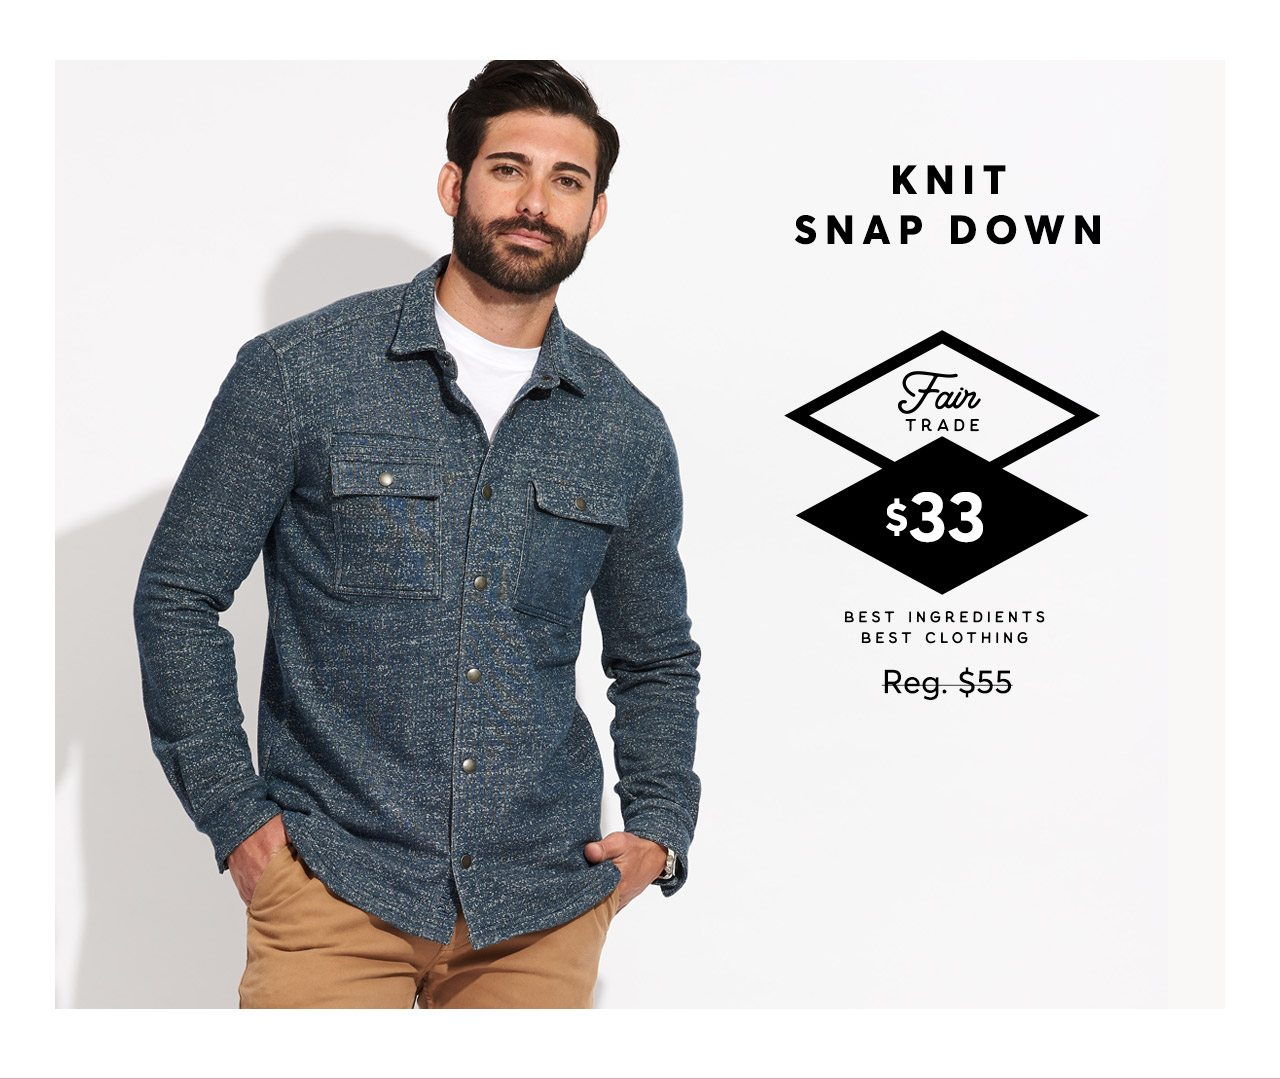 Knit Snap Down, regular $55, now $33